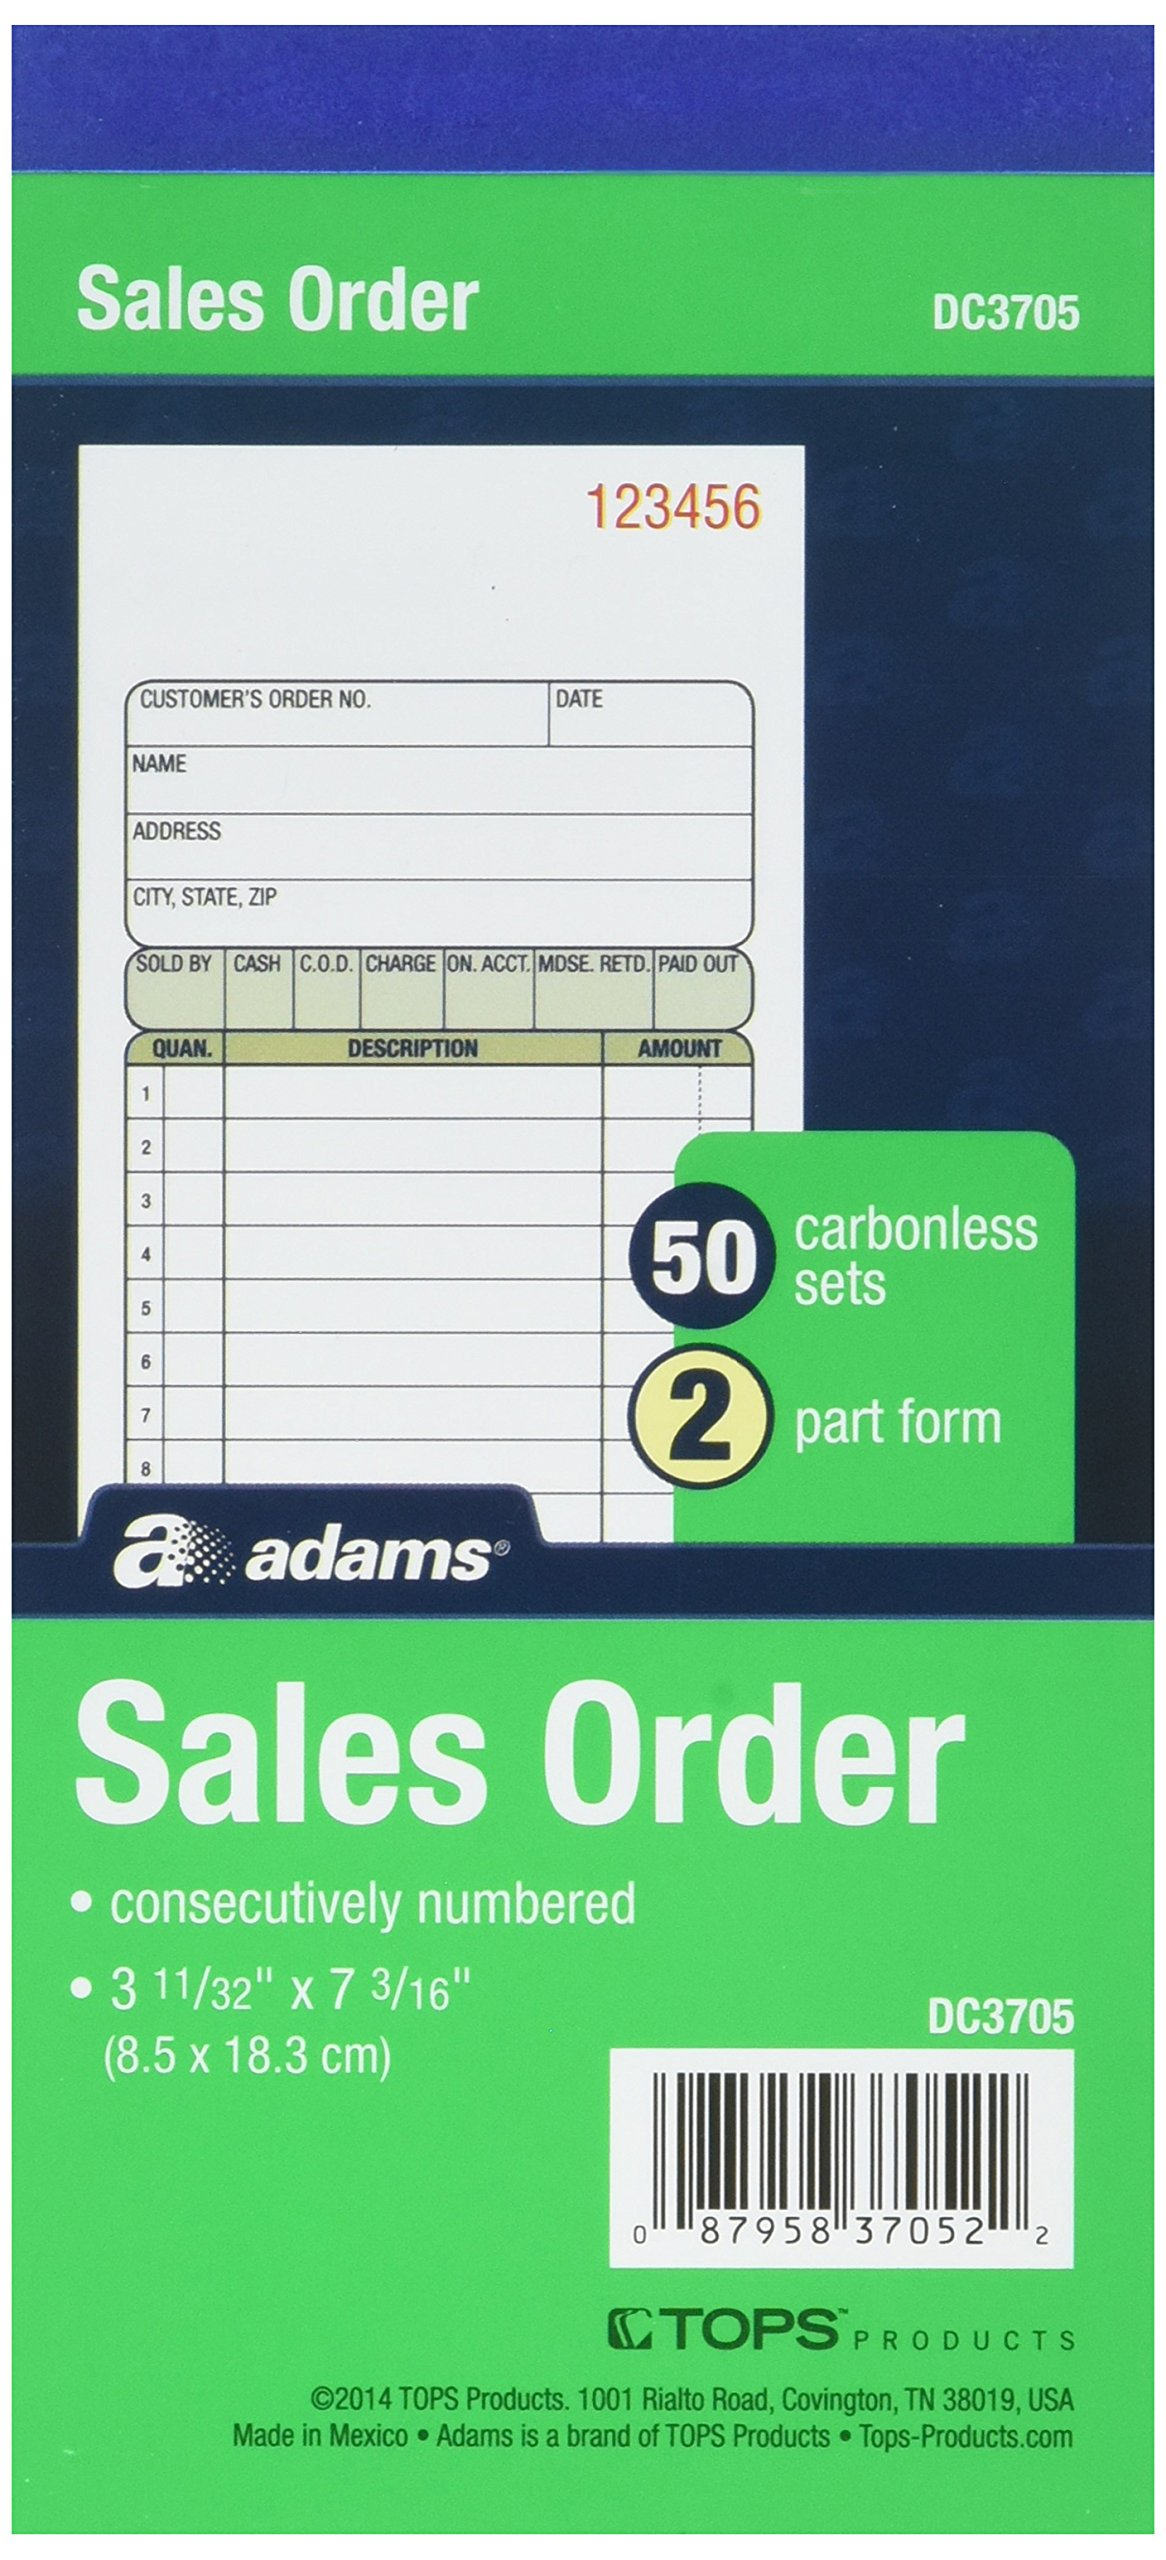 Adams Sales Order Books, DC3705, Case of 25